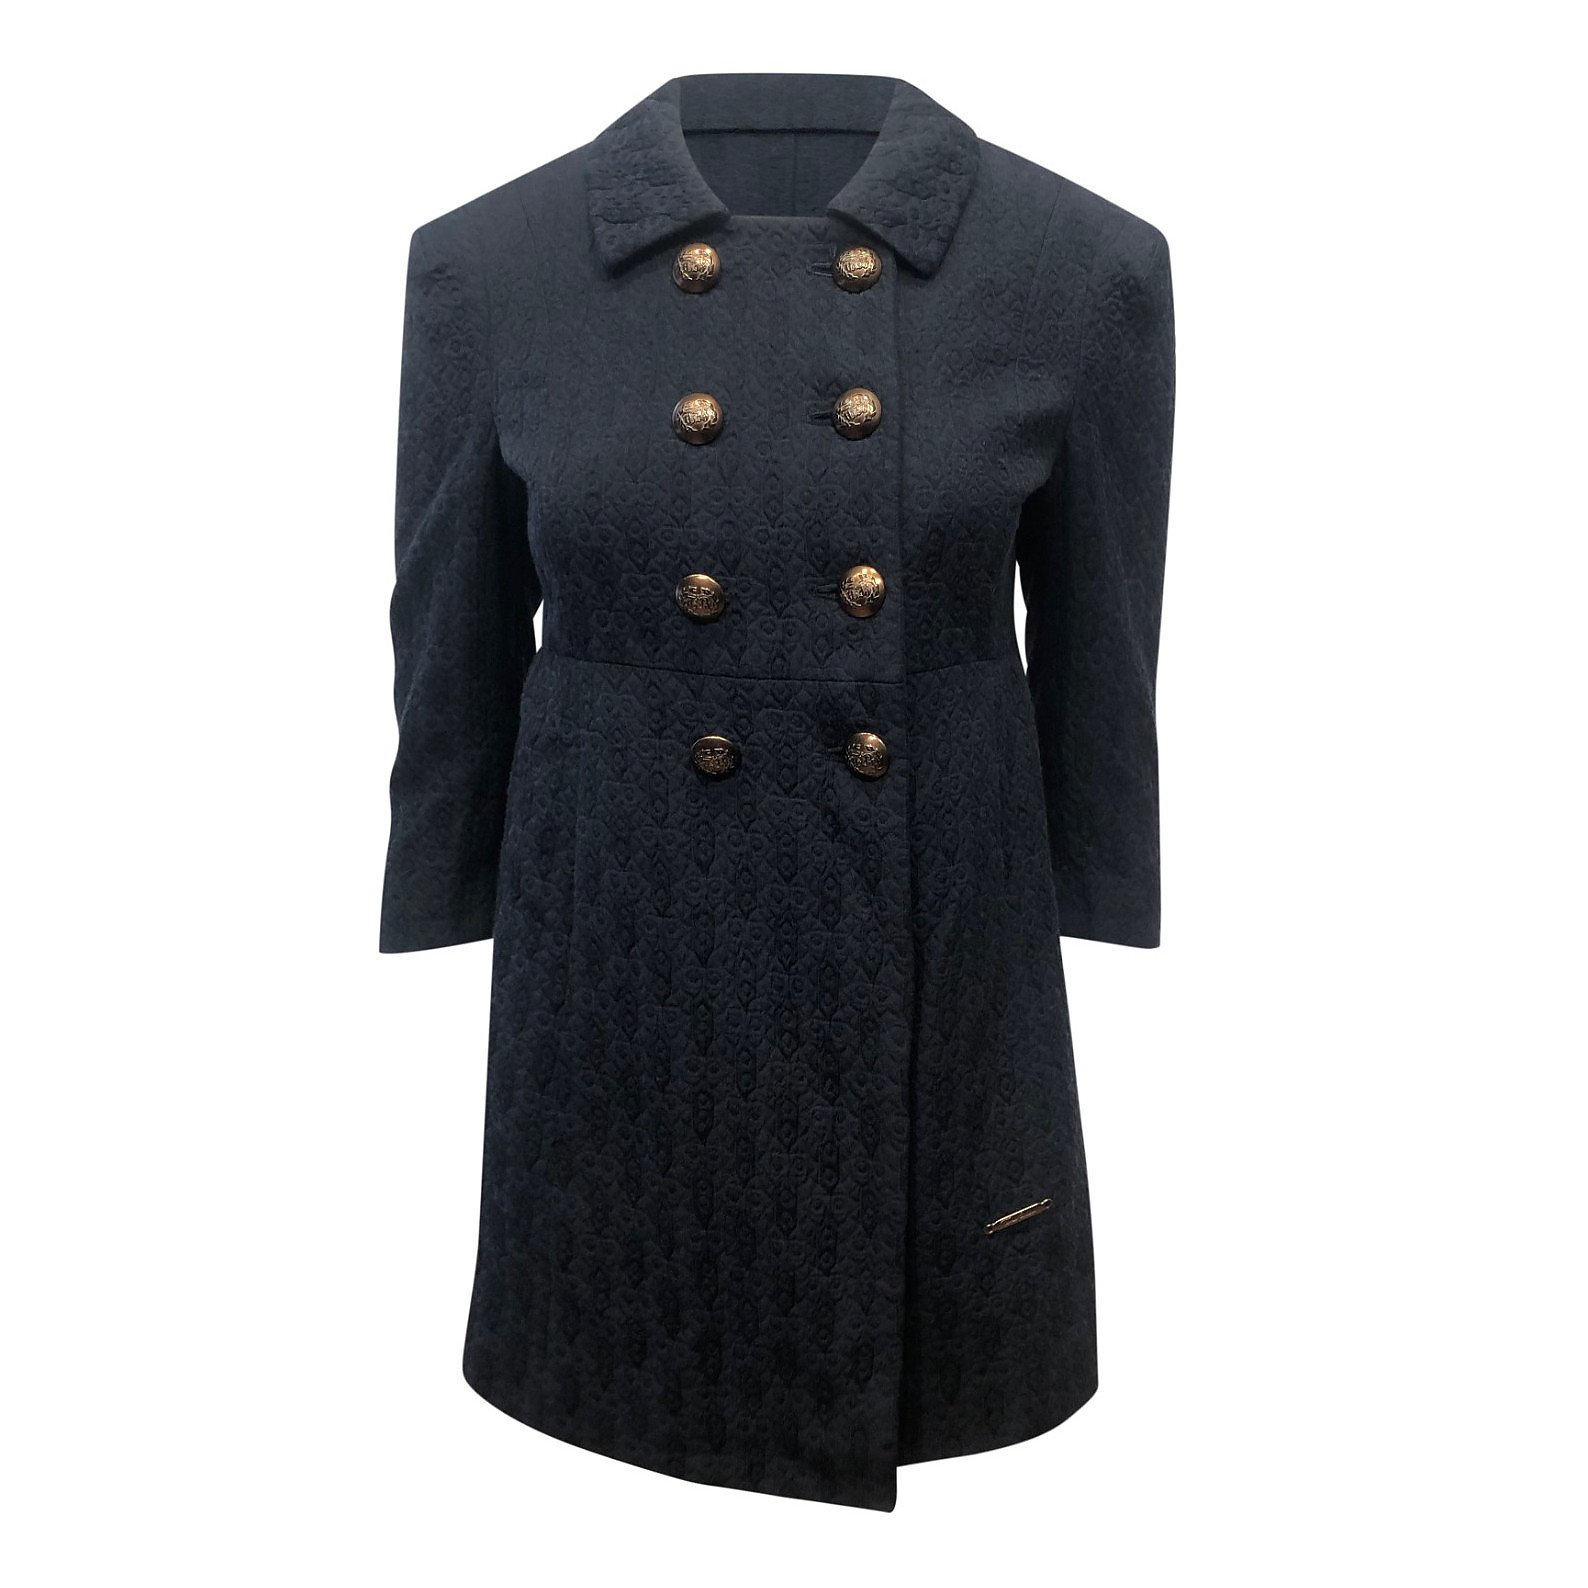 Thomas Burberry by Burberry Textured Double Breasted Jacket